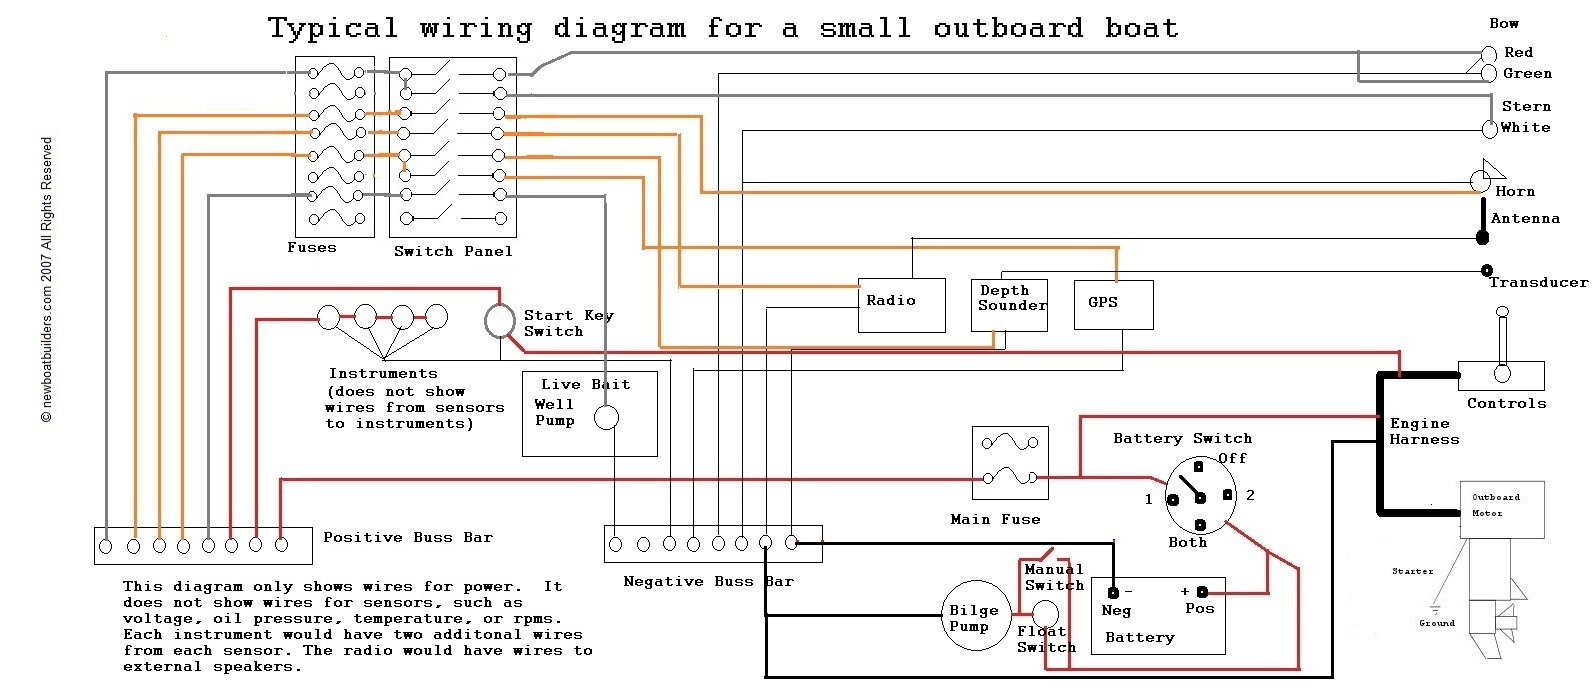 wiring diagram boat simple wiring diagram rh david huggett co uk